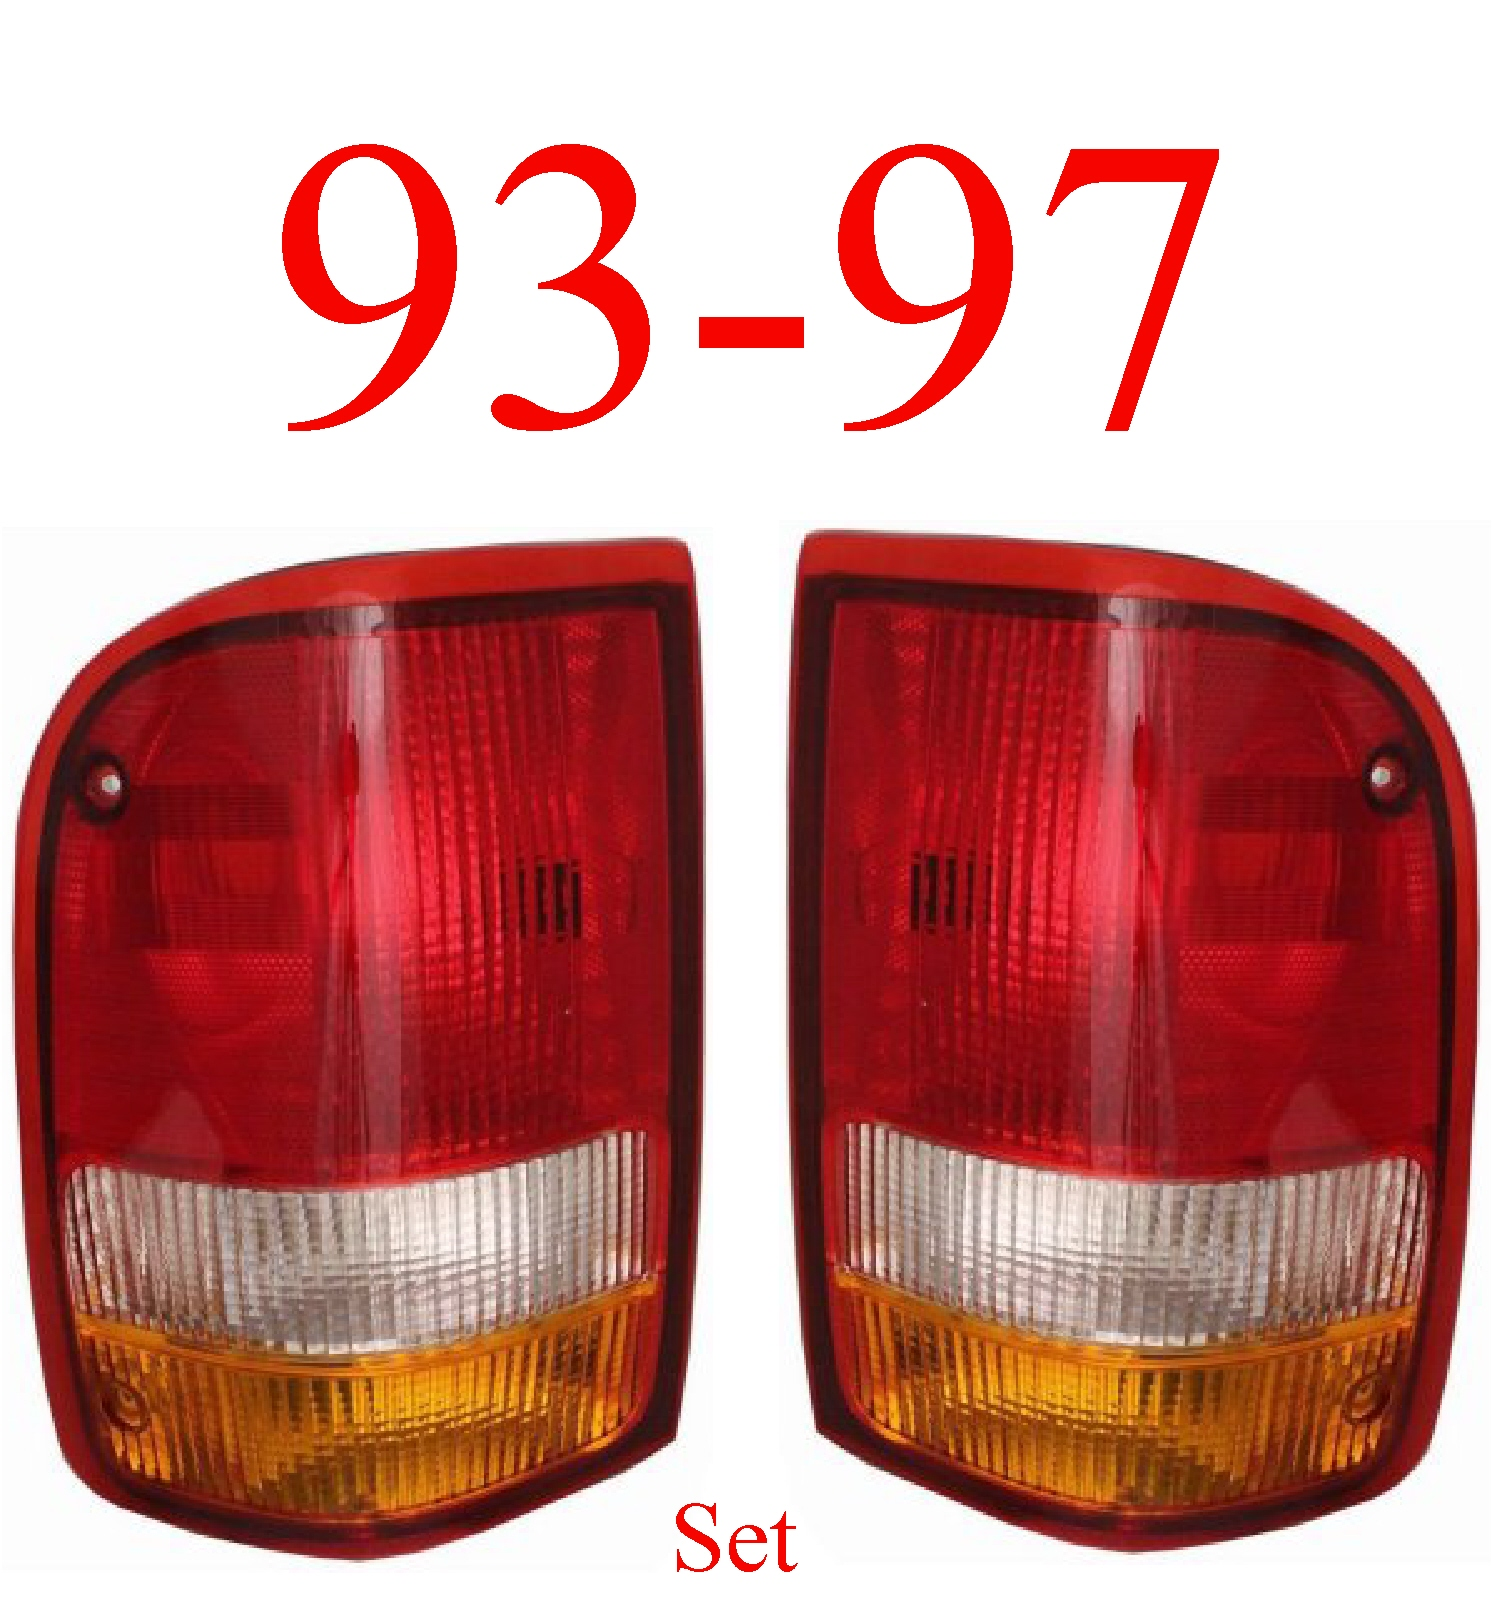 93-97 Ford Ranger 2Pc Tail Light Set